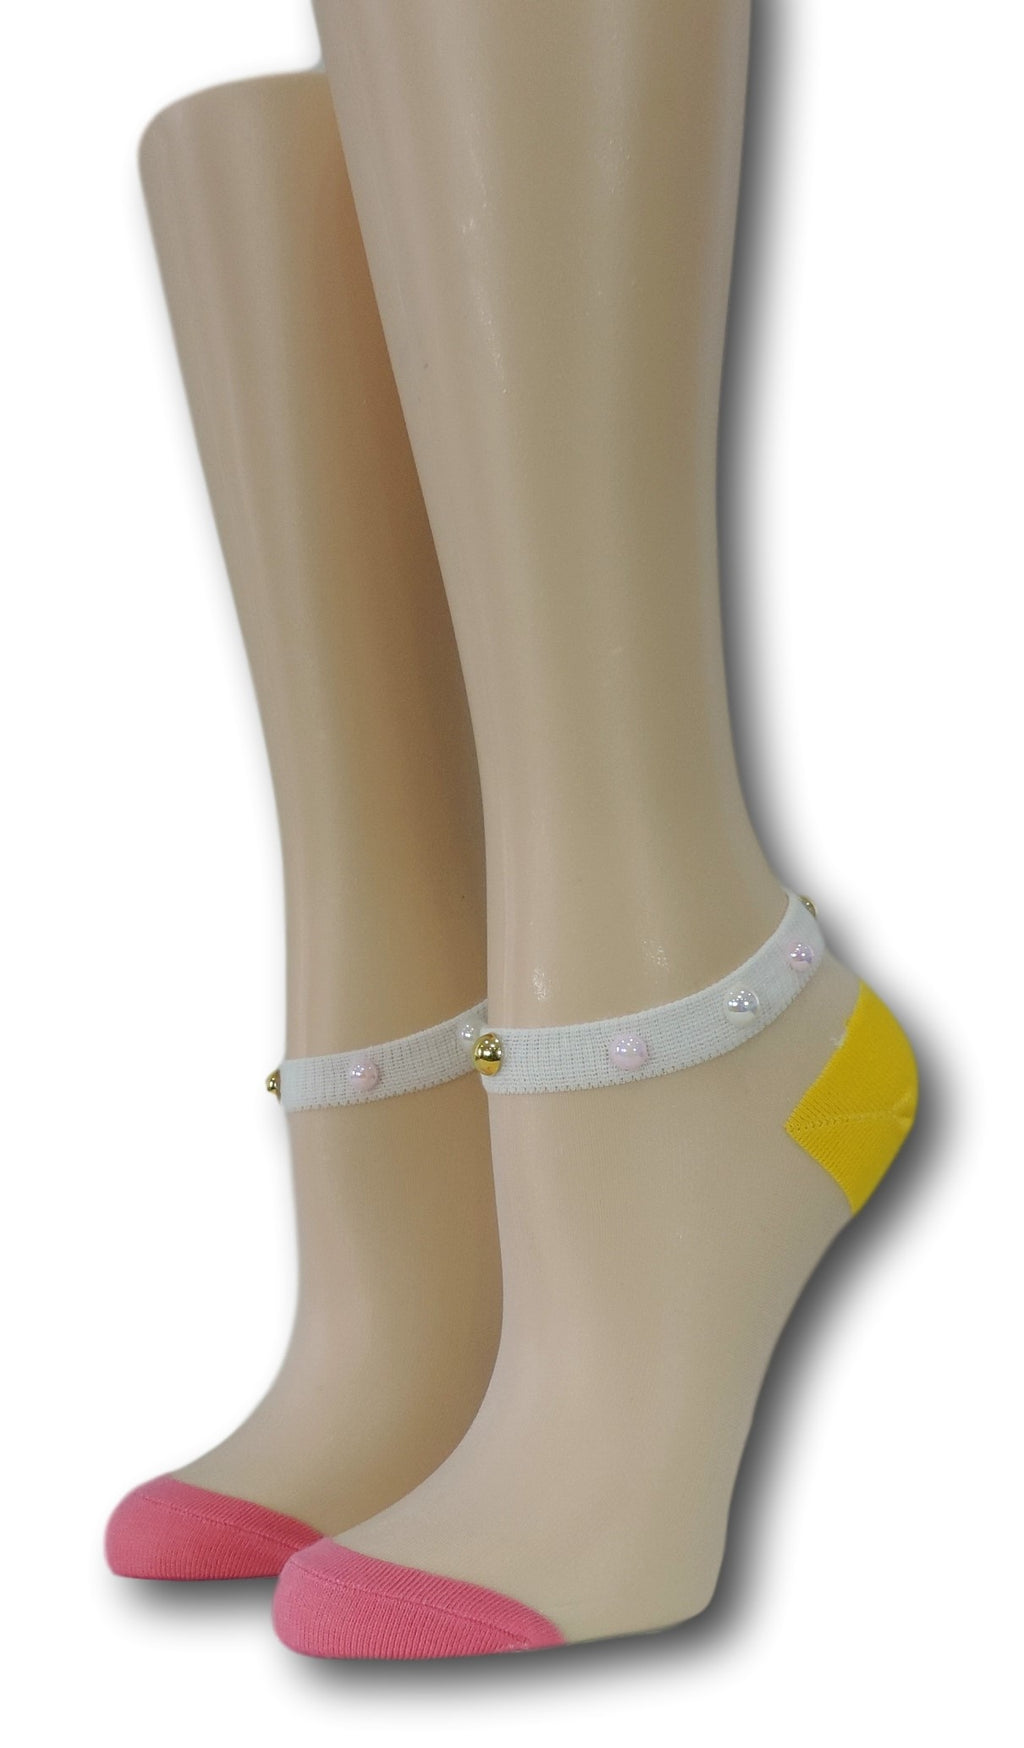 Pink-Yellow Ankle Sheer Socks with beads